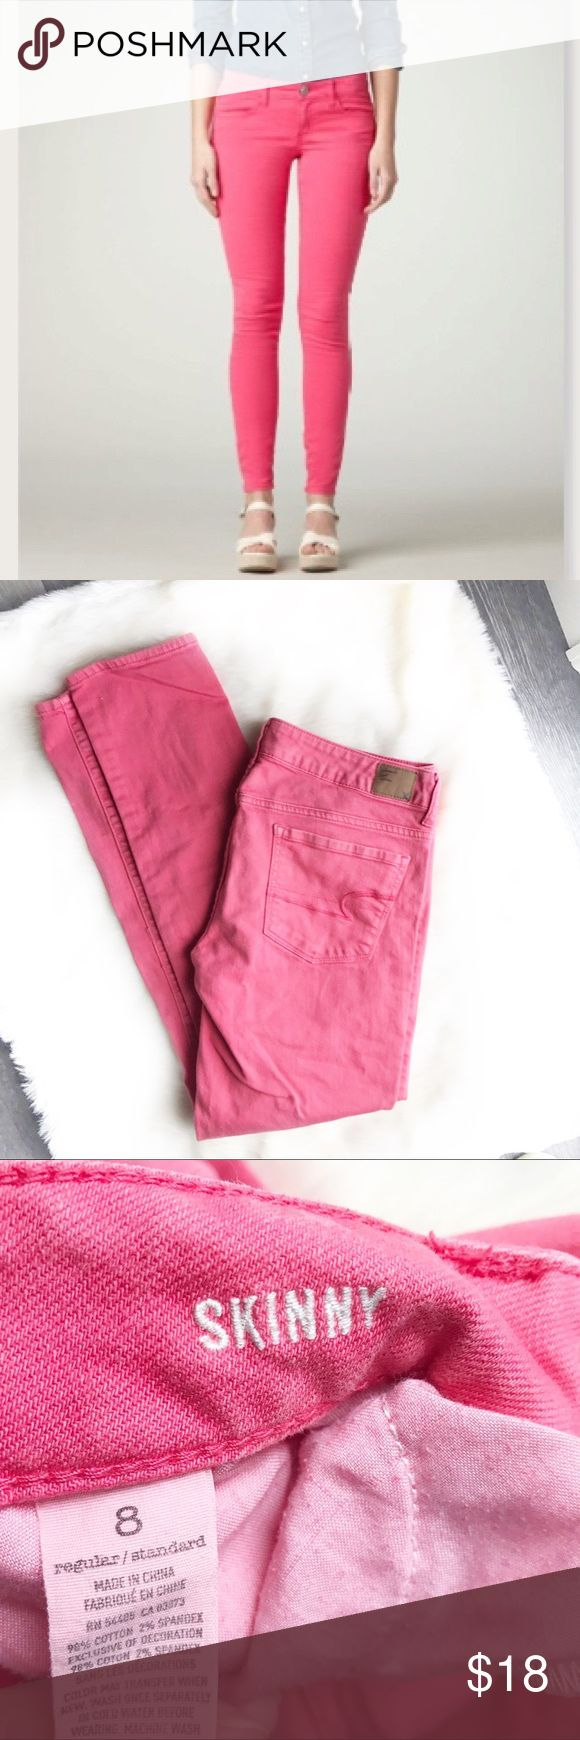 🍾American Eagle Pink Skinny Jeans AE skinny jeans. Size 8 Regular. Pink. Mark/dried substance on left thigh. American Eagle Outfitters Jeans Skinny